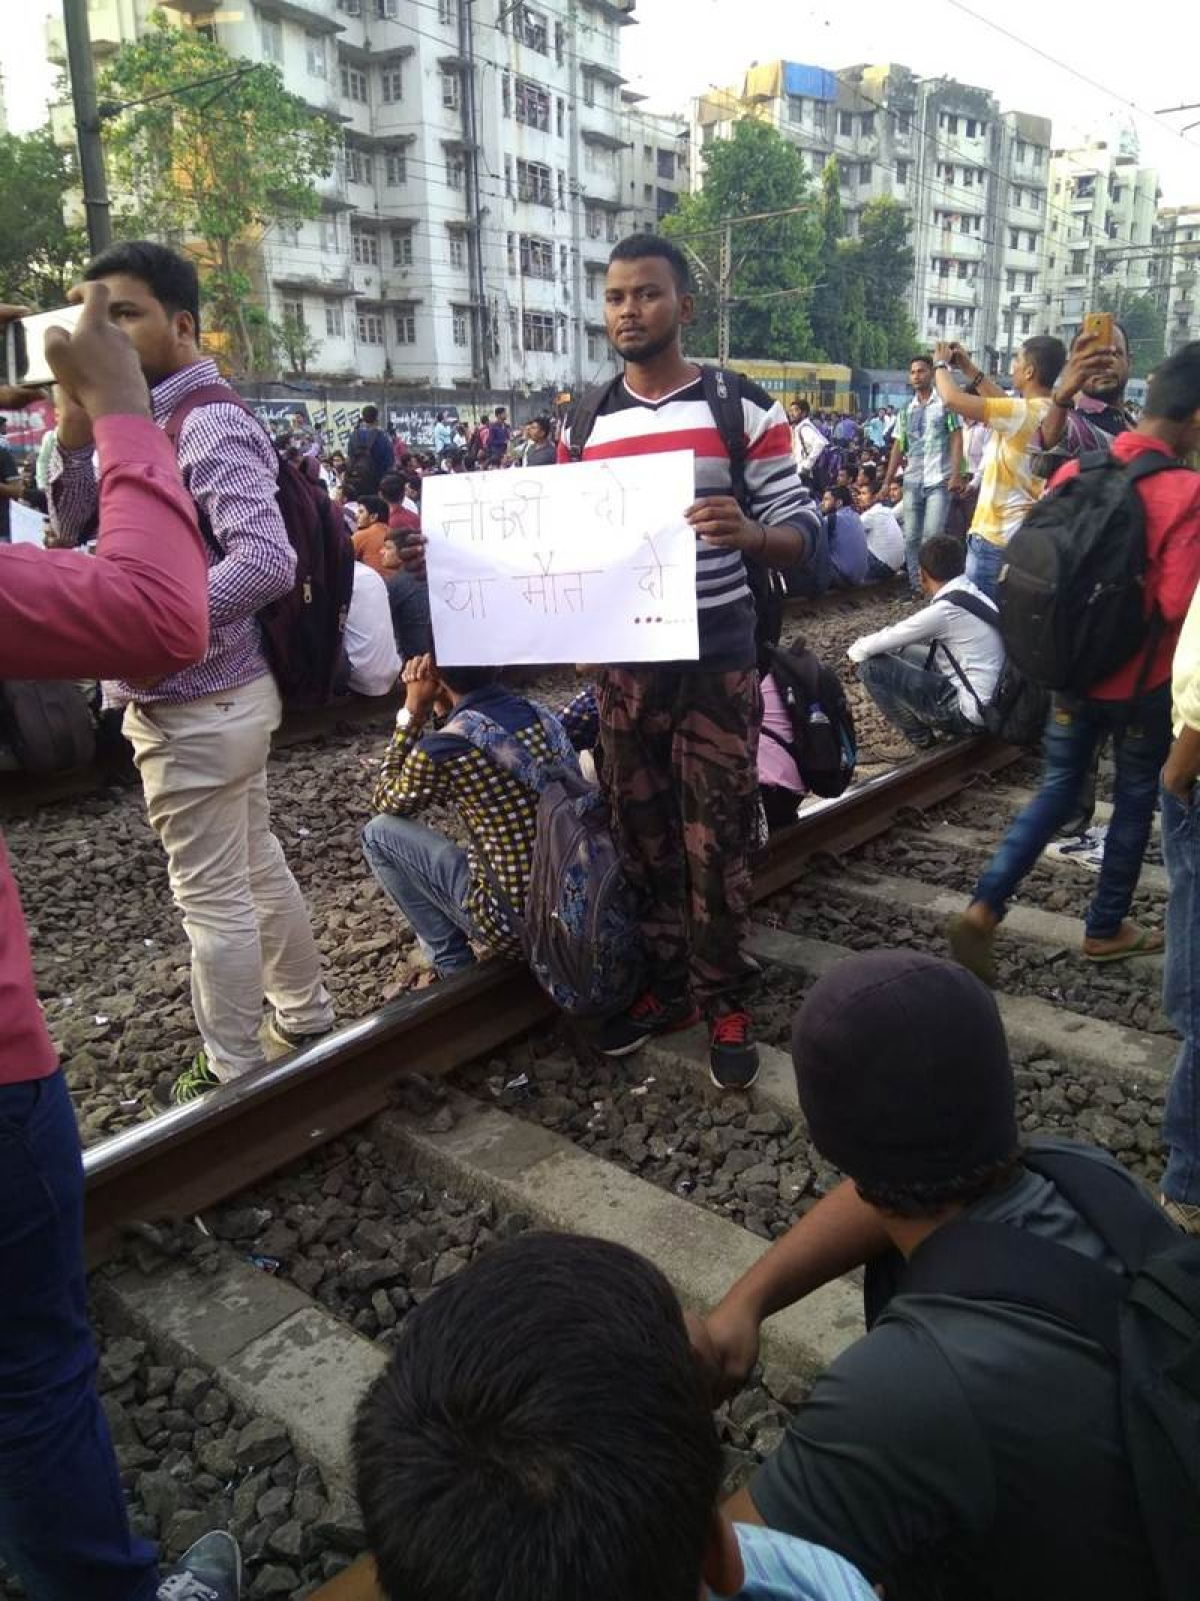 Mumbai Rail Roko Updates: Students' protest called off; 2 alleged accused arrested